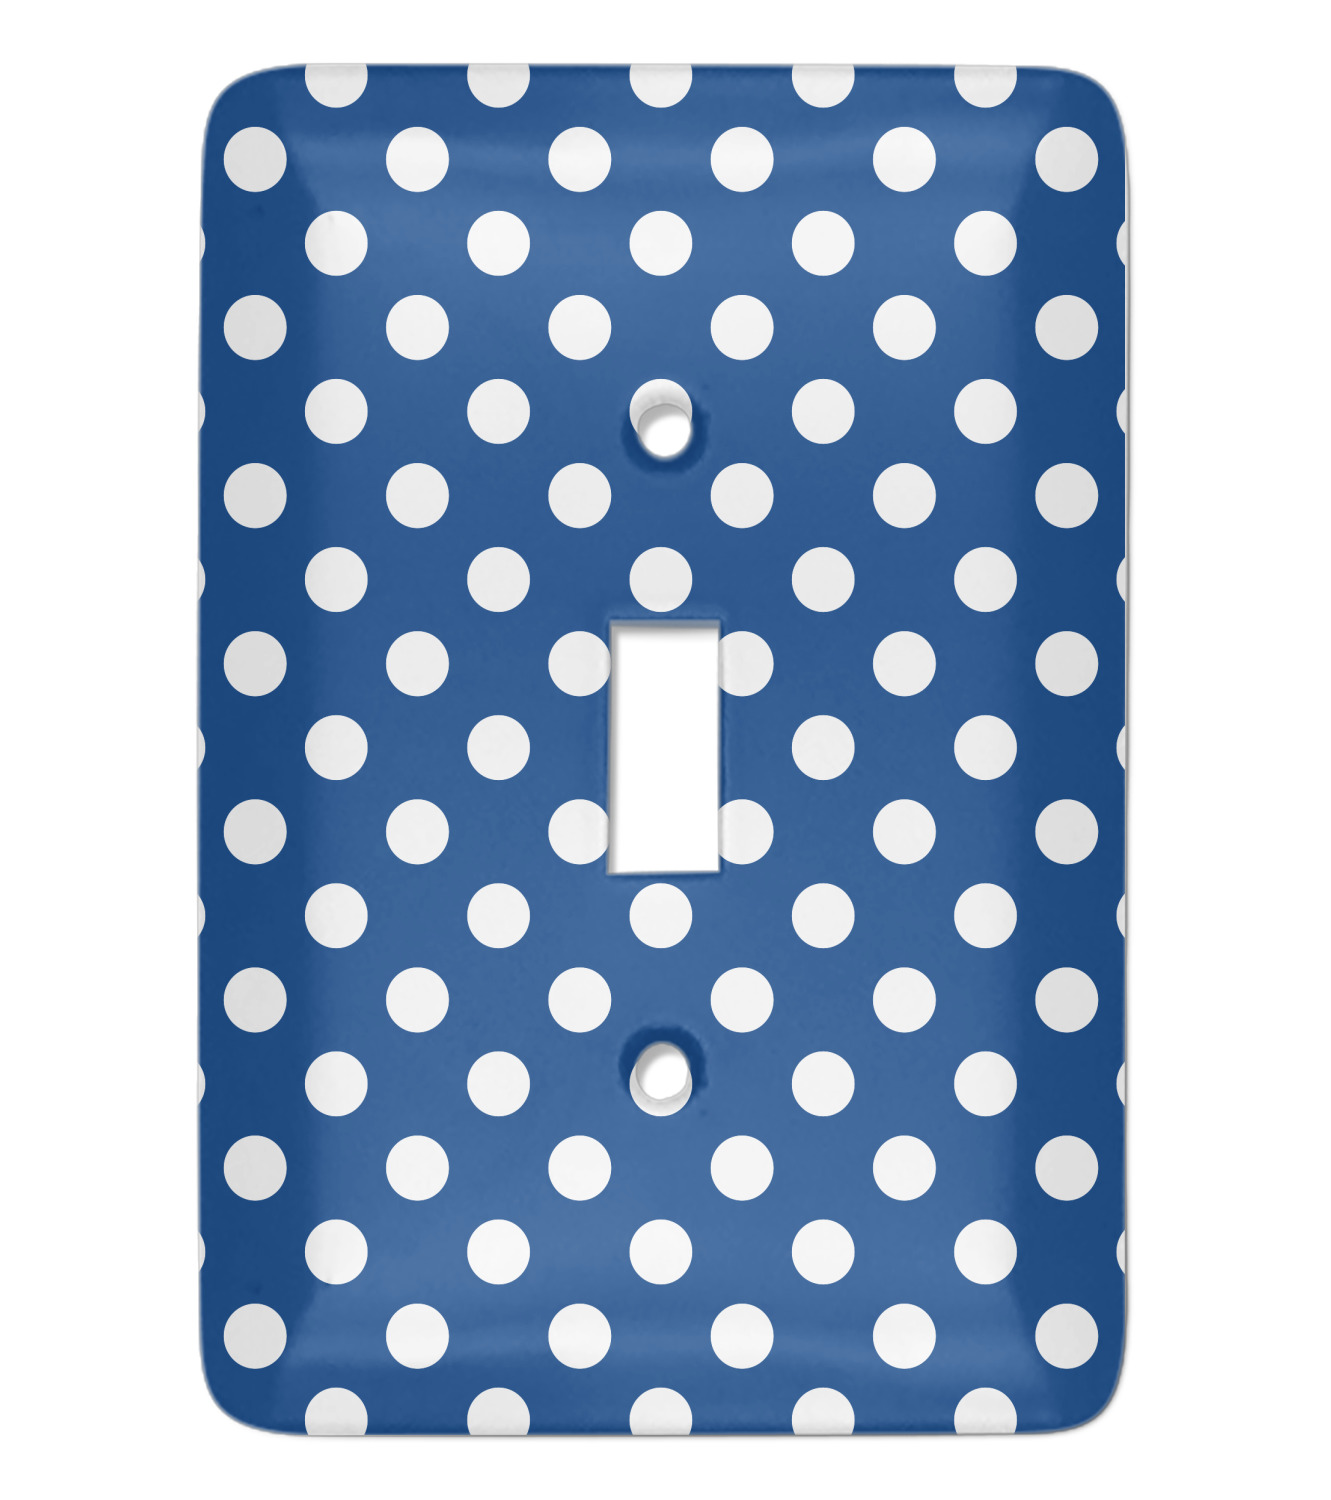 Polka Dots Light Switch Cover Single Toggle Personalized